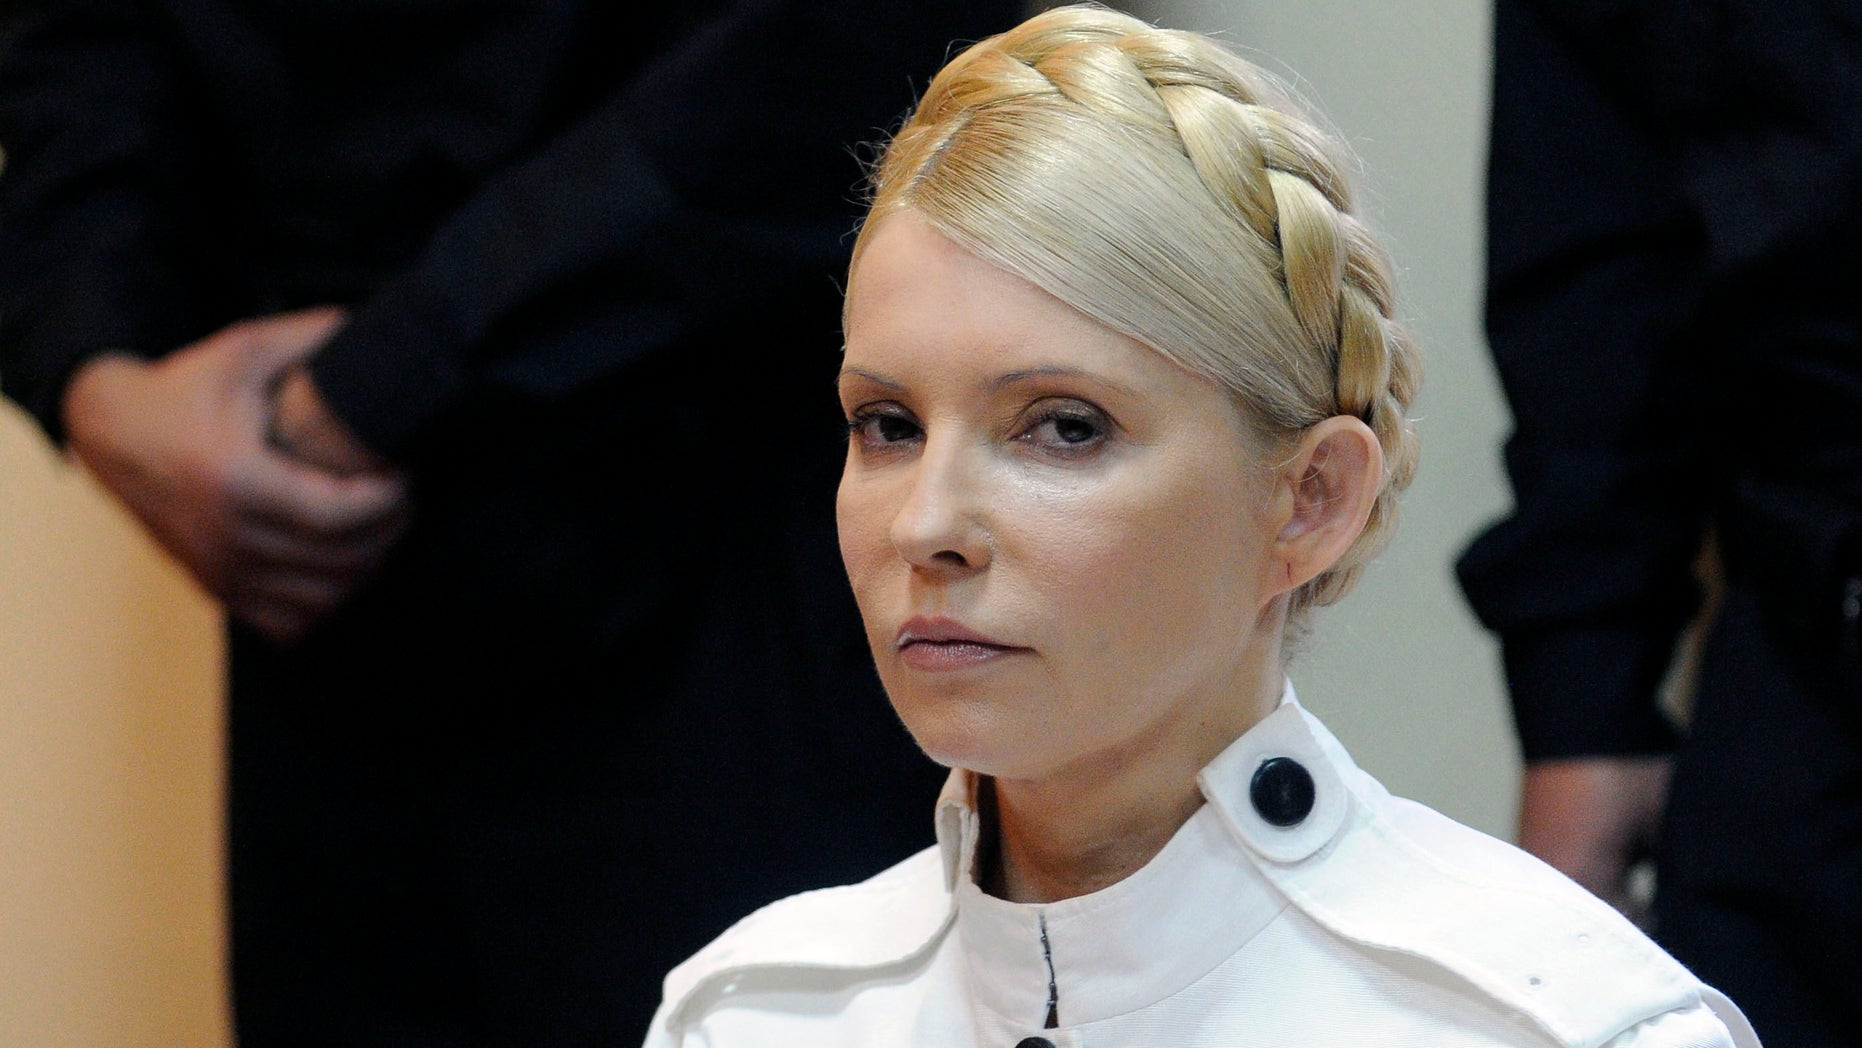 June 29, 2011: In this file photo, former Ukrainian Prime Minister Yulia Tymoshenko appears during a trial hearing at the Pecherskiy District Court in Kiev, Ukraine.